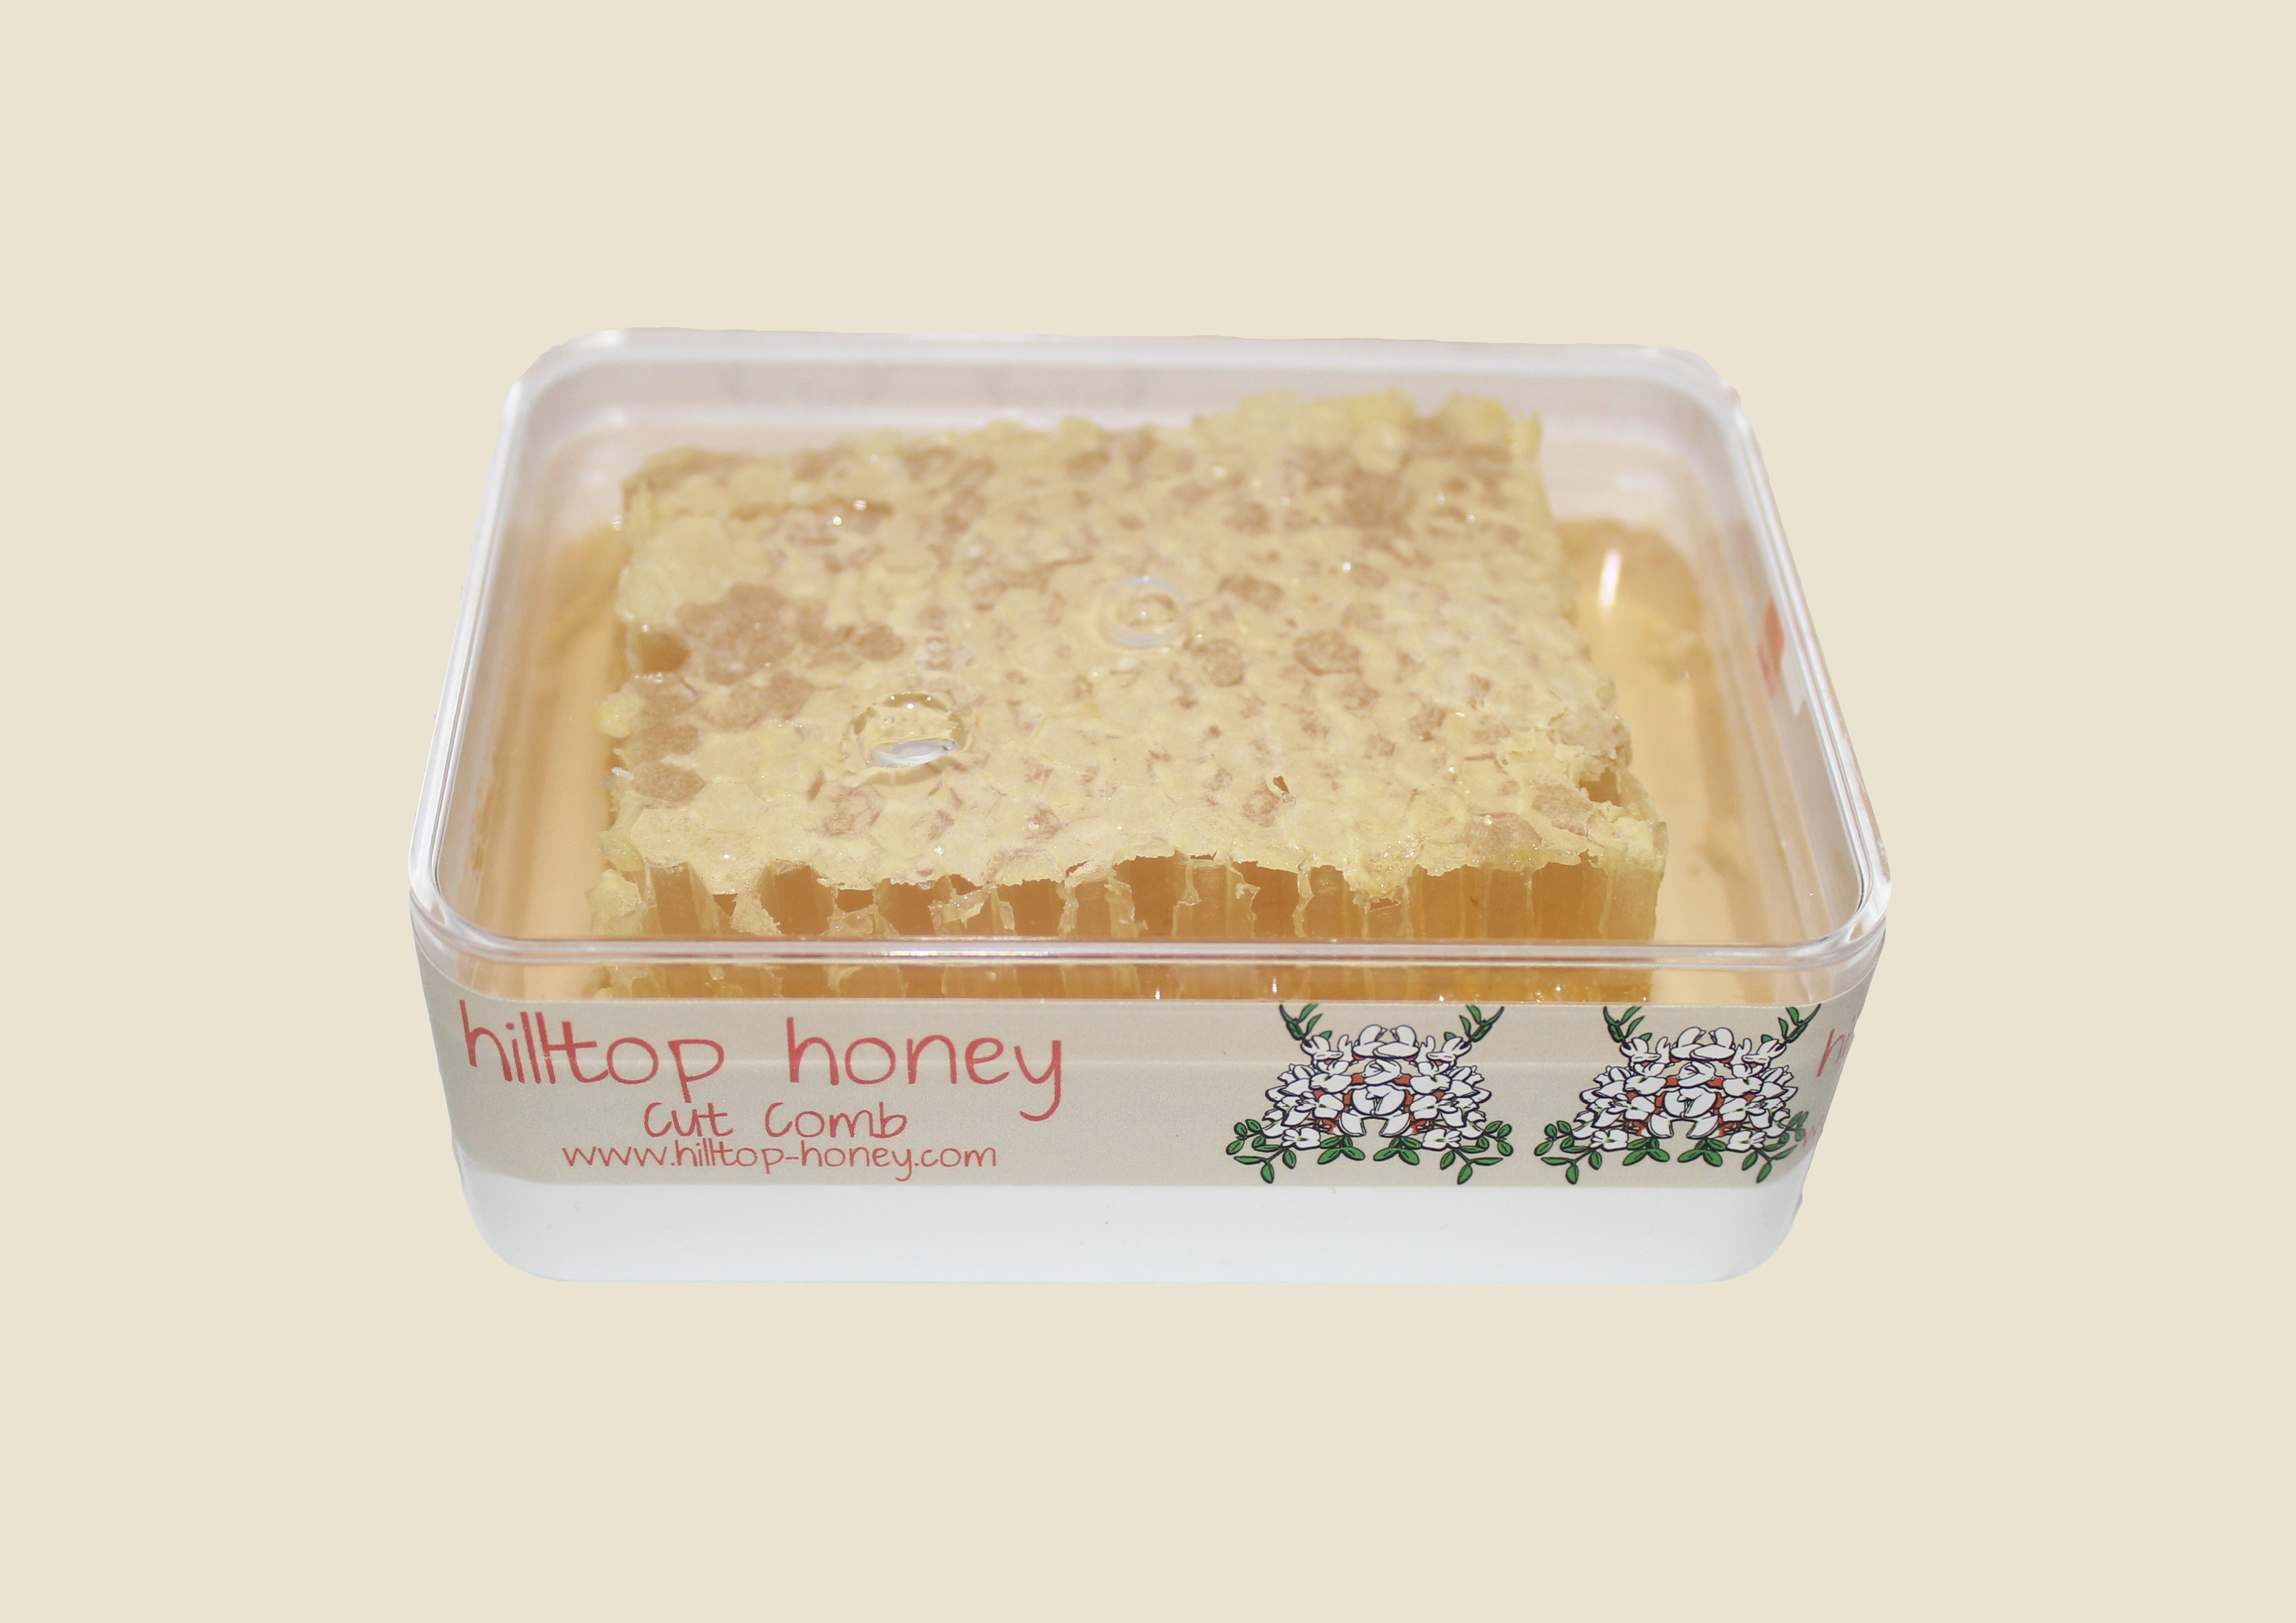 Hilltop Honey - Cut Comb Slab (400g)